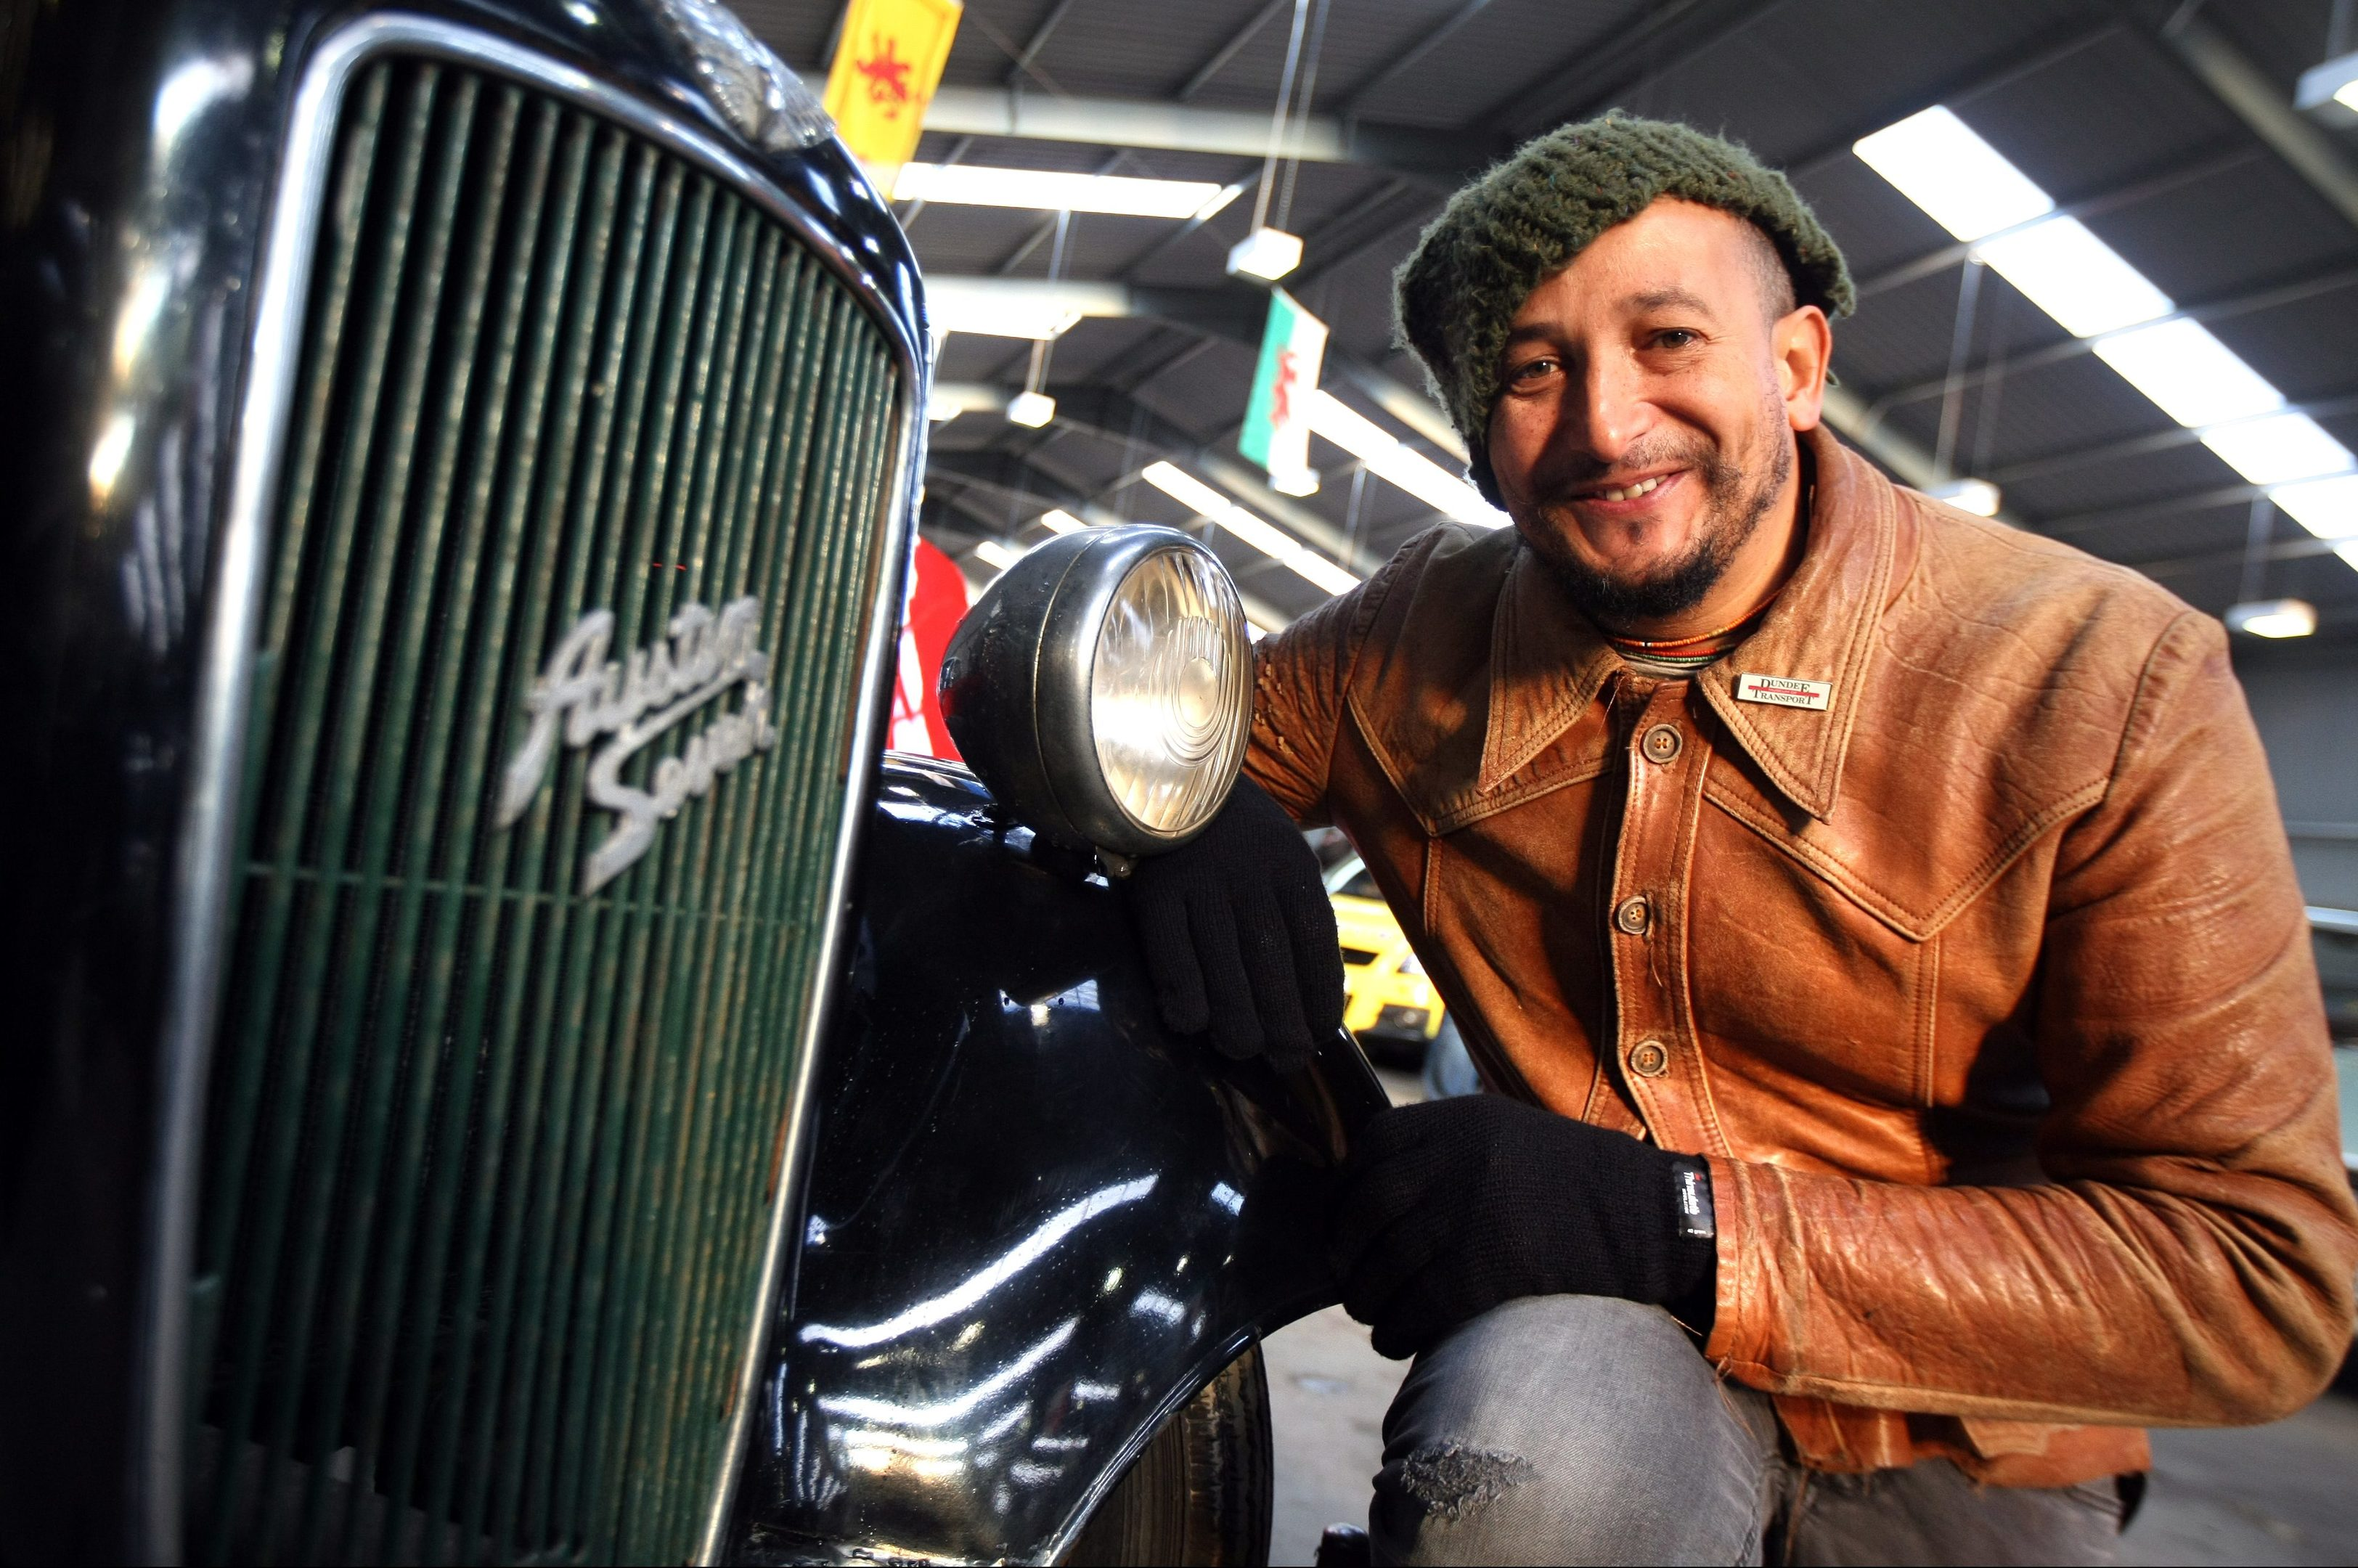 Fuzz Townshend from Car S.O.S at Errol airfeild.